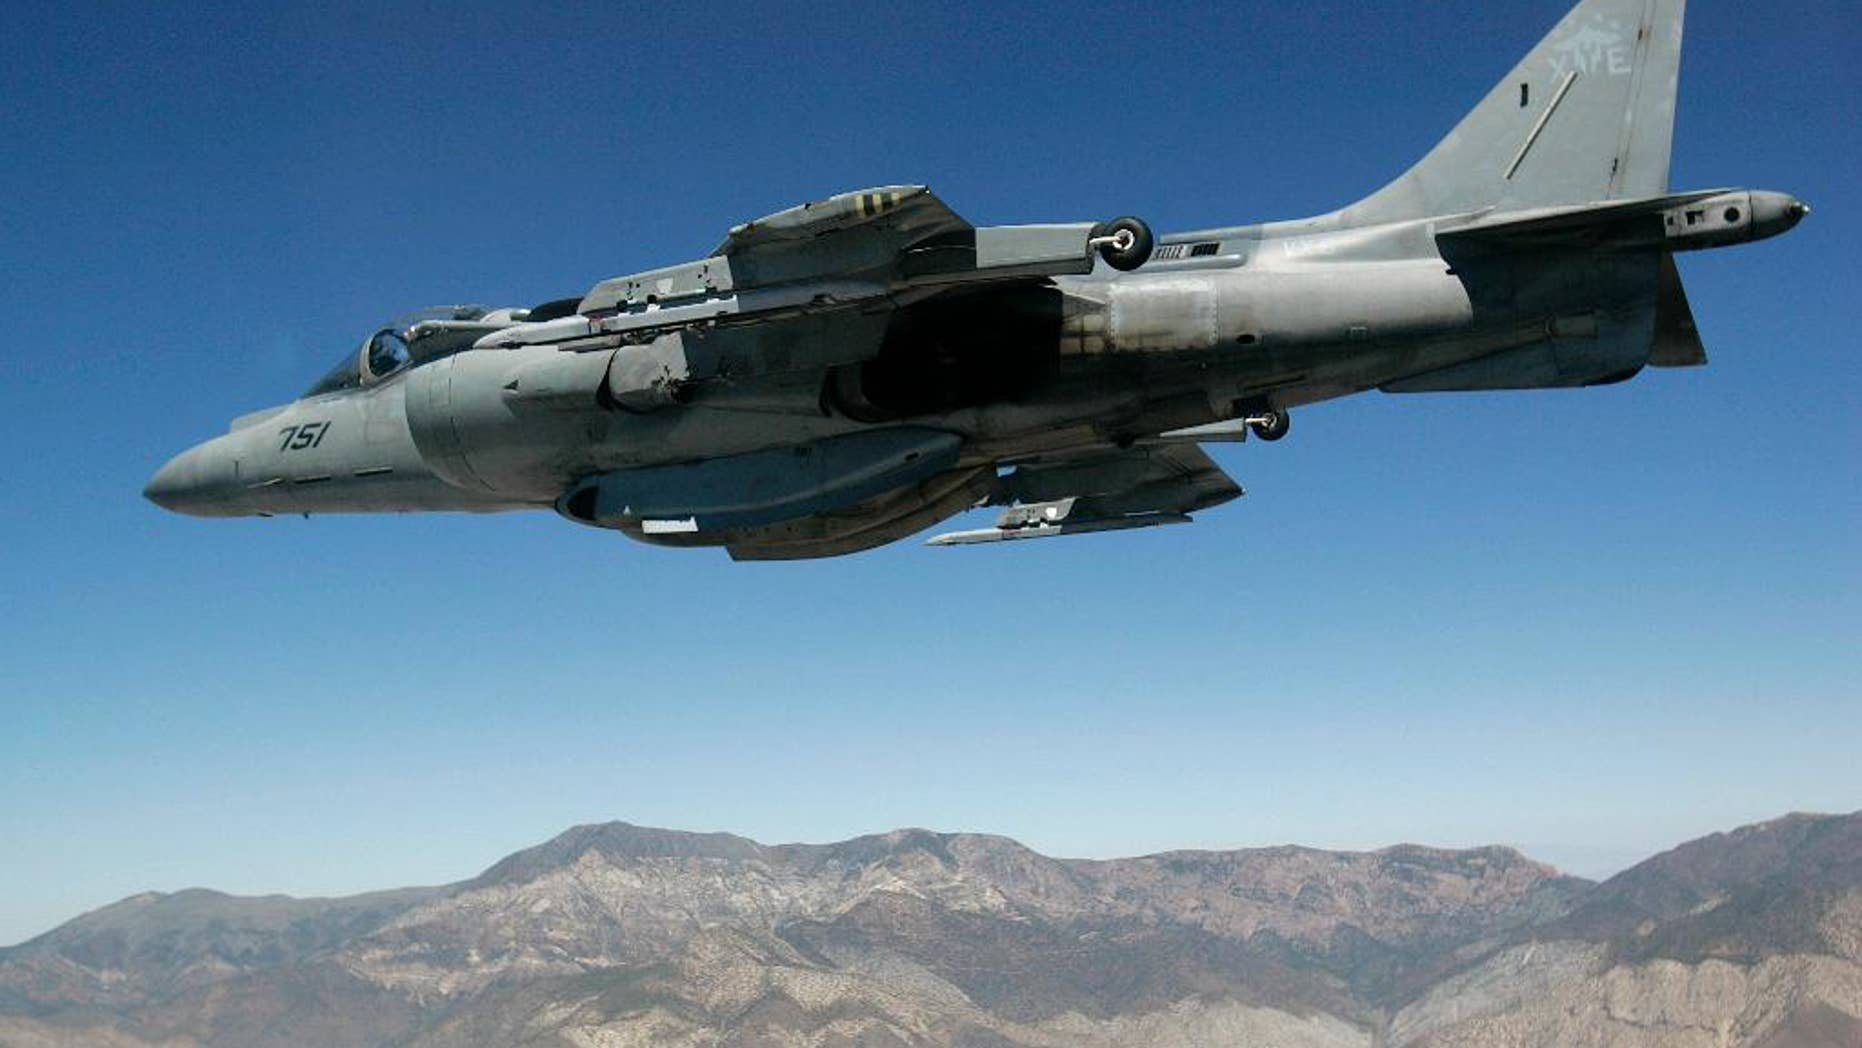 FILE - In this June 21, 2007 file photo, a U.S. Marine Corps AV-8 Harrier fighter jet from VX-9 Naval Air Weapons Station China Lake is seen on a training flight from the cockpit of an F-16 based at the California Air National Guard's 144th Fighter Wing over California. A U.S. Marine Corps AV-8 Harrier fighter jet, the same type shown in this photo, crashed Thursday, Sept. 22, 2016, into the ocean off the coast of southwestern Okinawa in Japan, but the pilot ejected safely from the aircraft and was rescued. The U.S. military in Camp Butler in Okinawa said the cause of the crash is still under investigation. (AP Photo/Ben Margot, File)